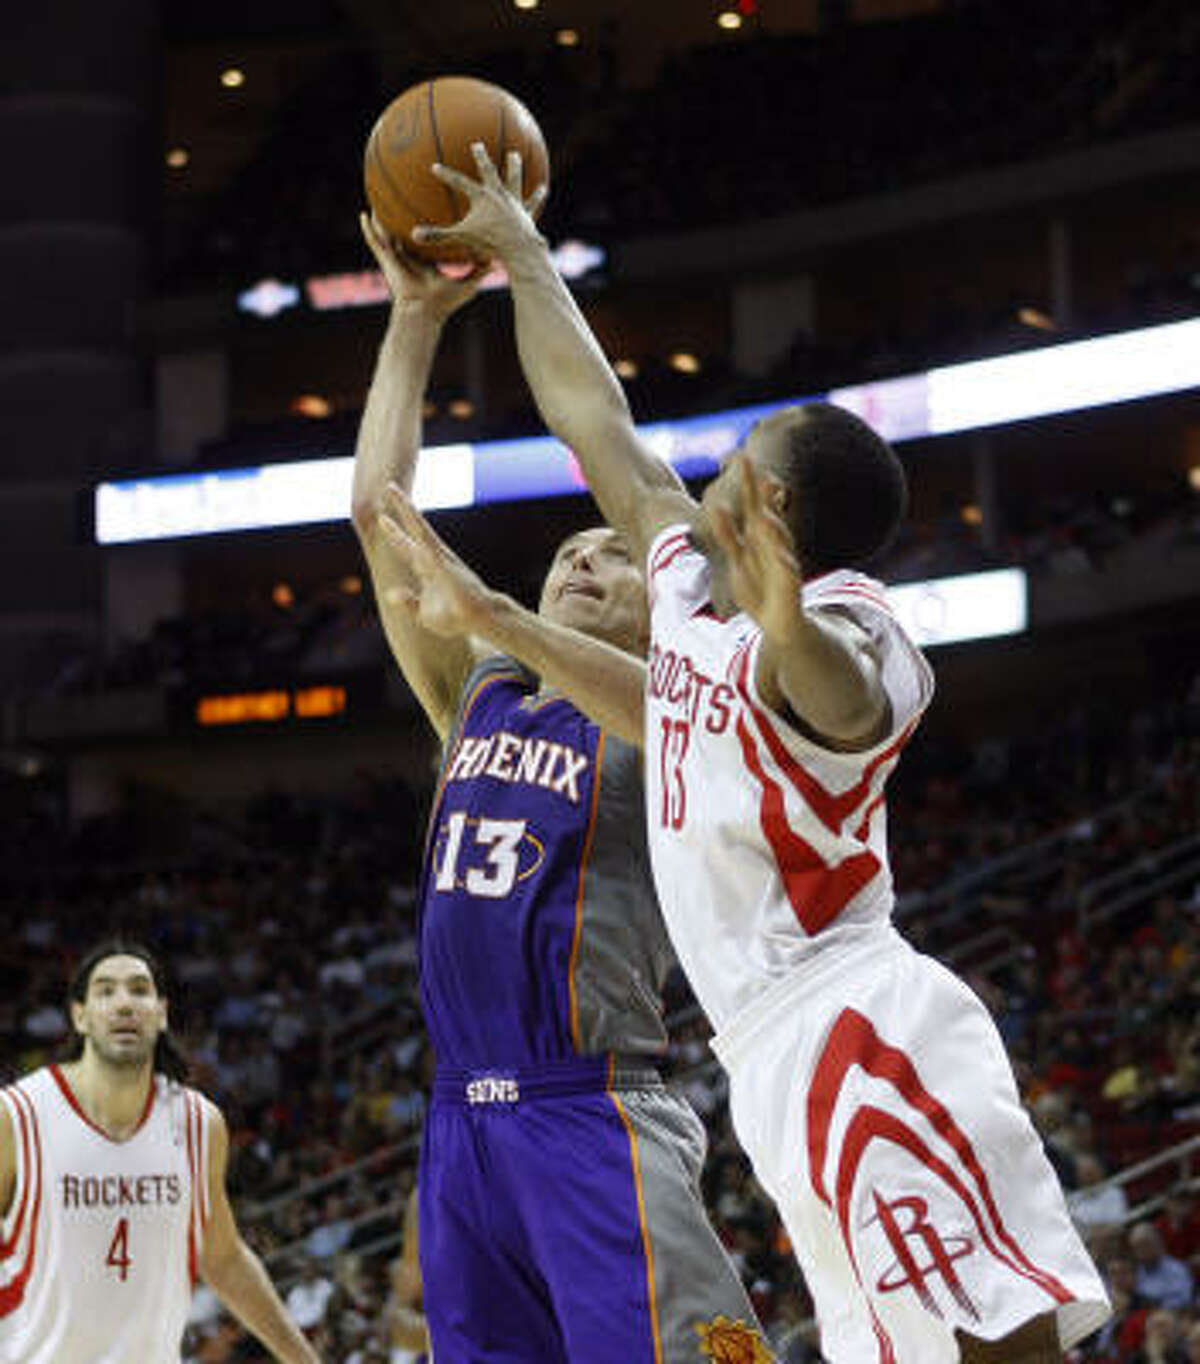 Suns' Steve Nash has his shot blocked by Rockets guard Ishmael Smith in the first quarter.